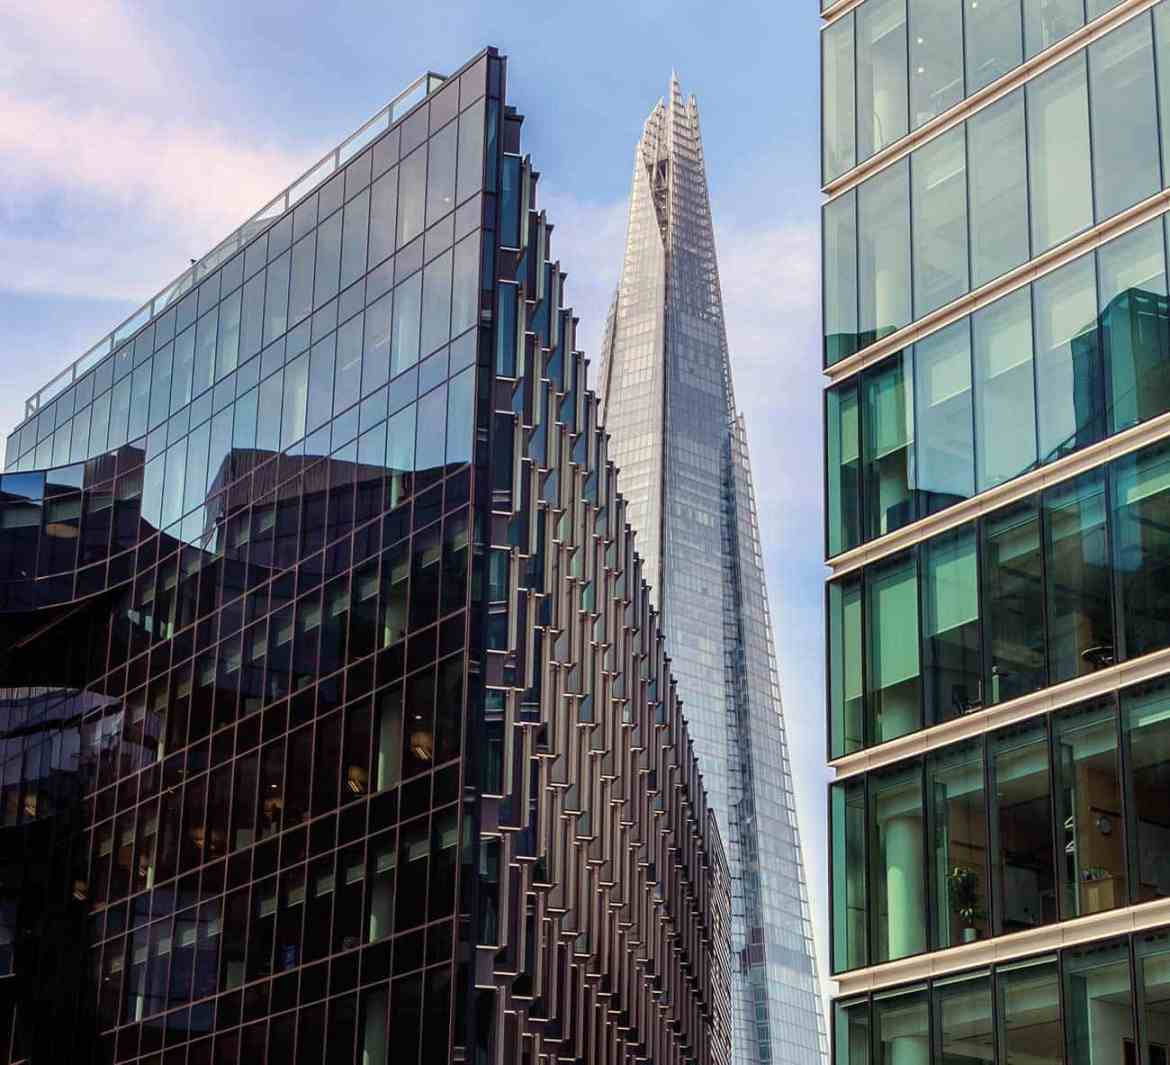 London's Shard, Europe's tallest building, is protected by Advanced fire panels.